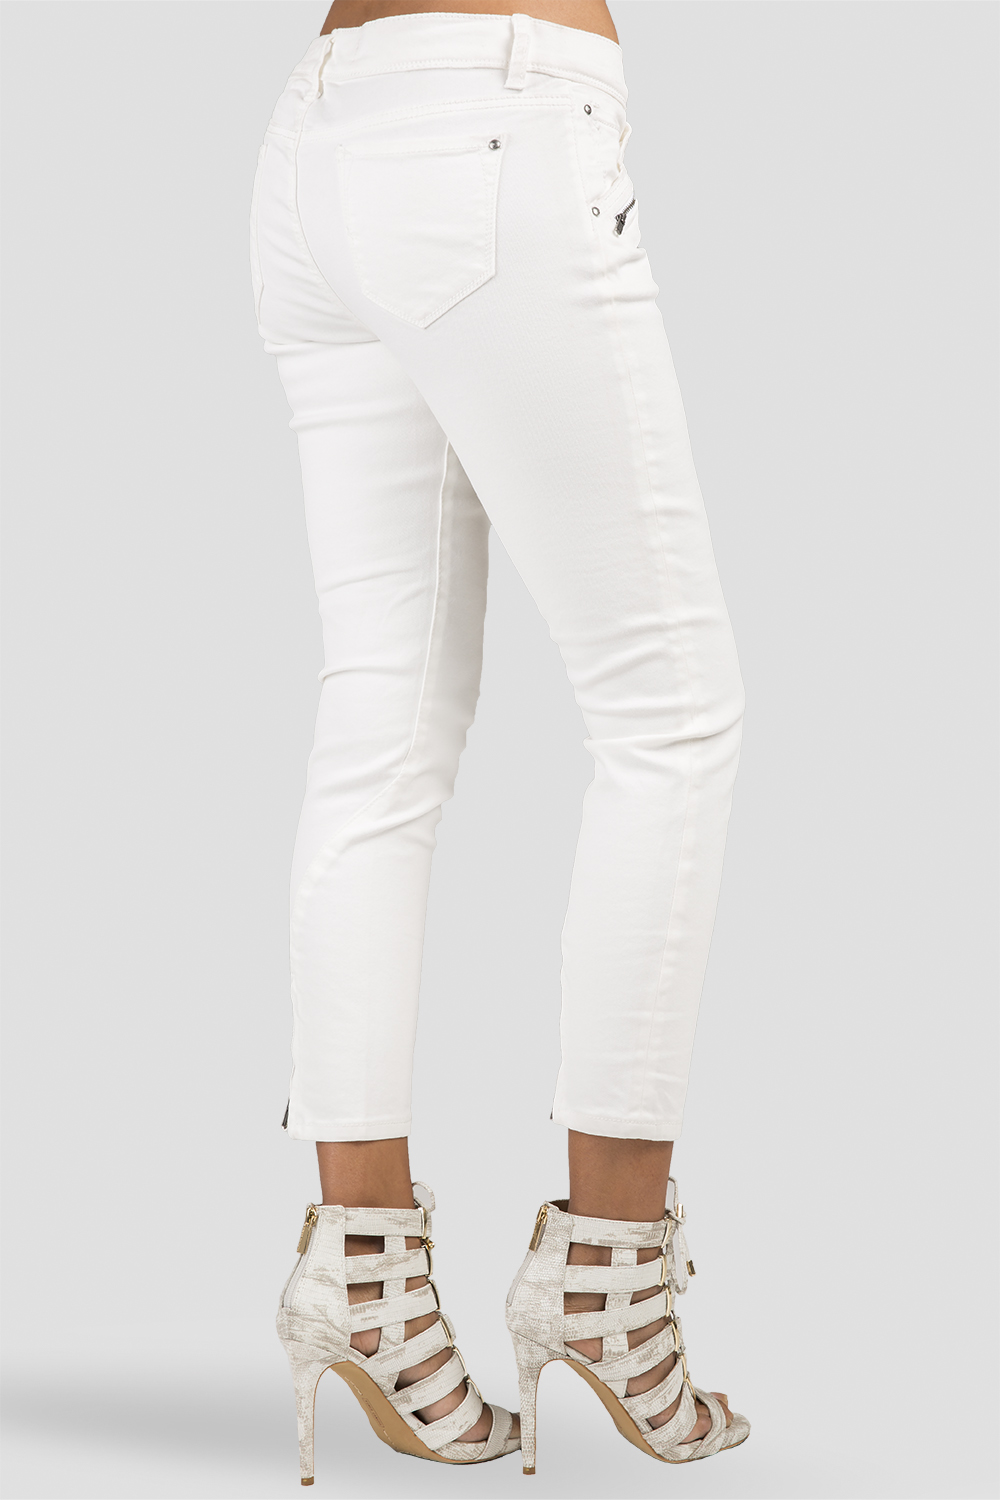 Ankle Zippers Skinny Jeans